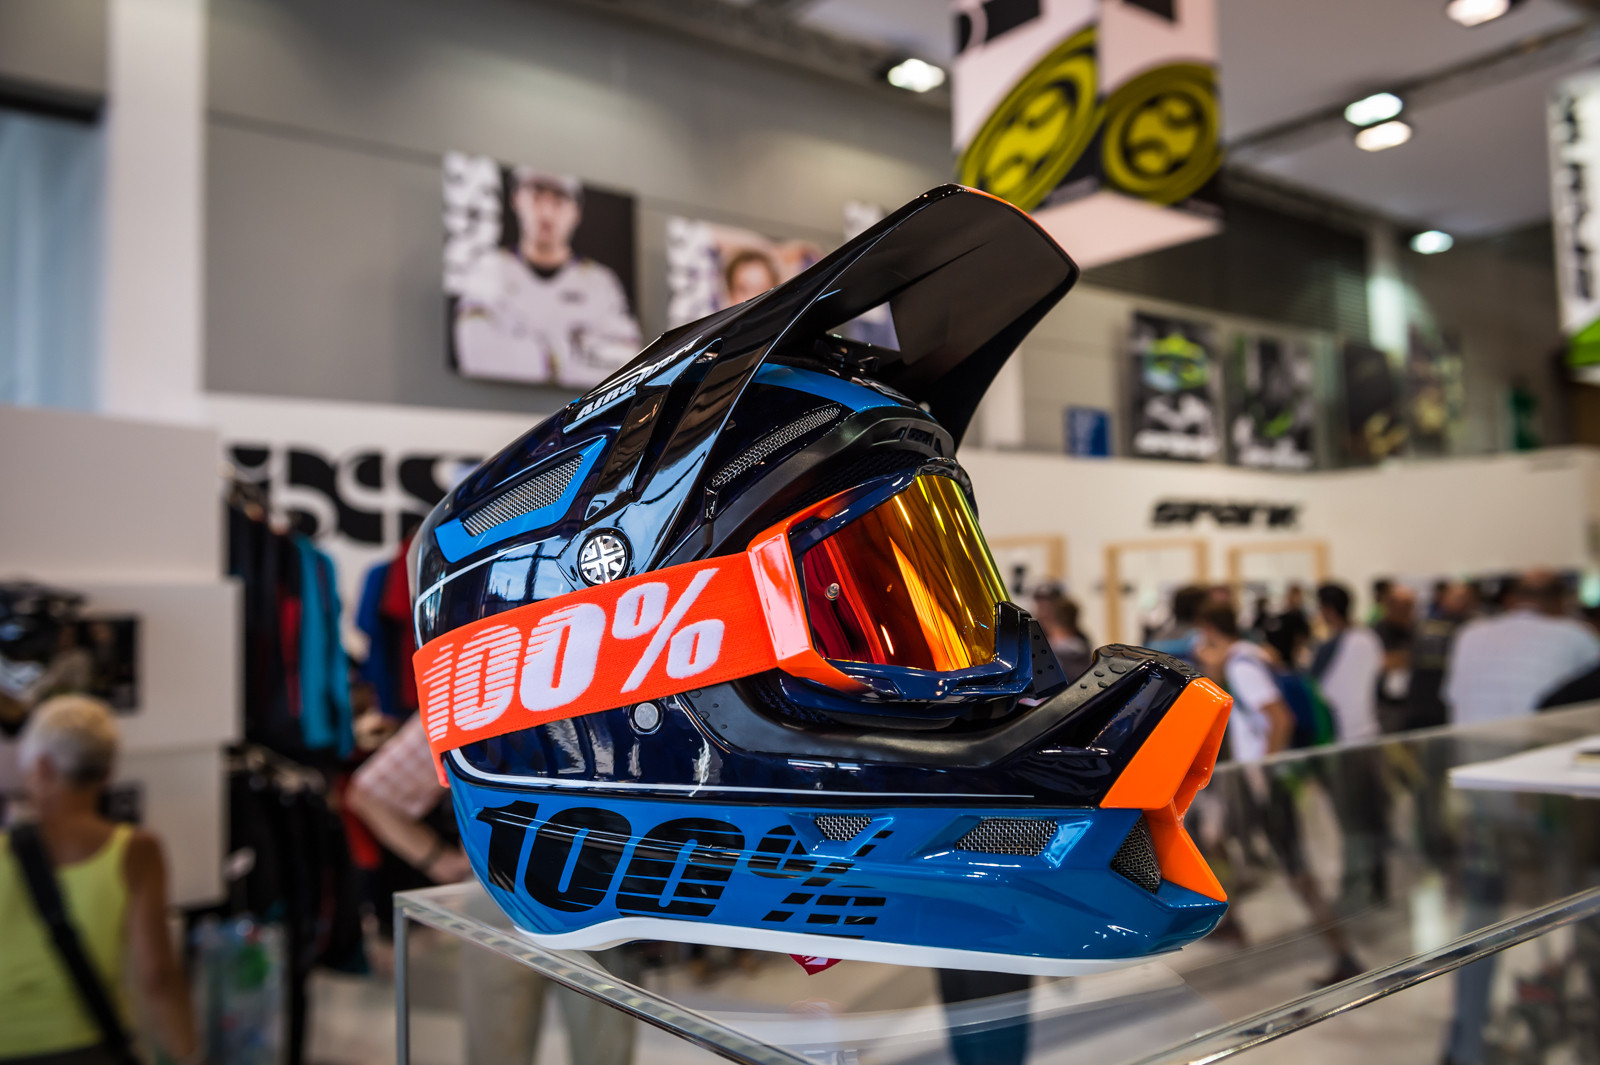 100% Aircraft Fullface Helmet - 2016 Mountain Bike Apparel & Protection at Eurobike - Mountain Biking Pictures - Vital MTB